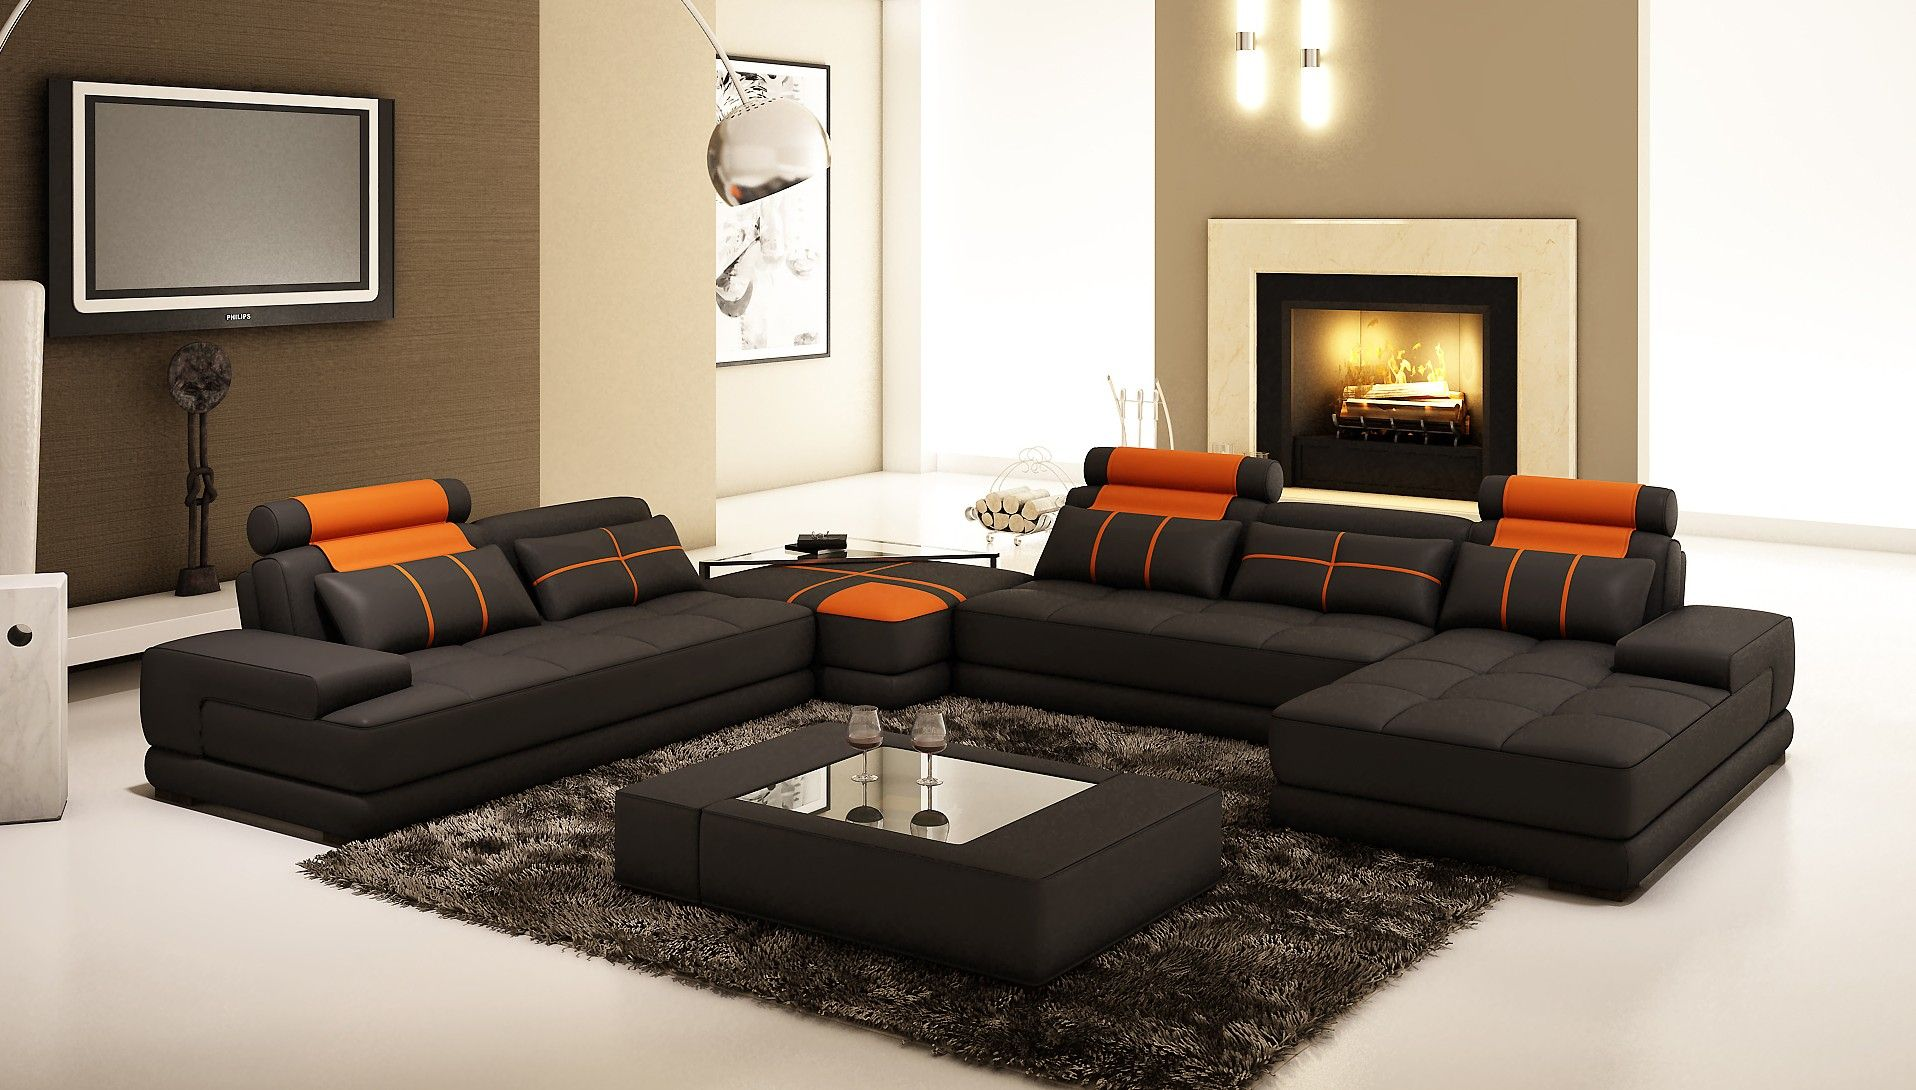 living room black orange leather sofa with cushions plus black